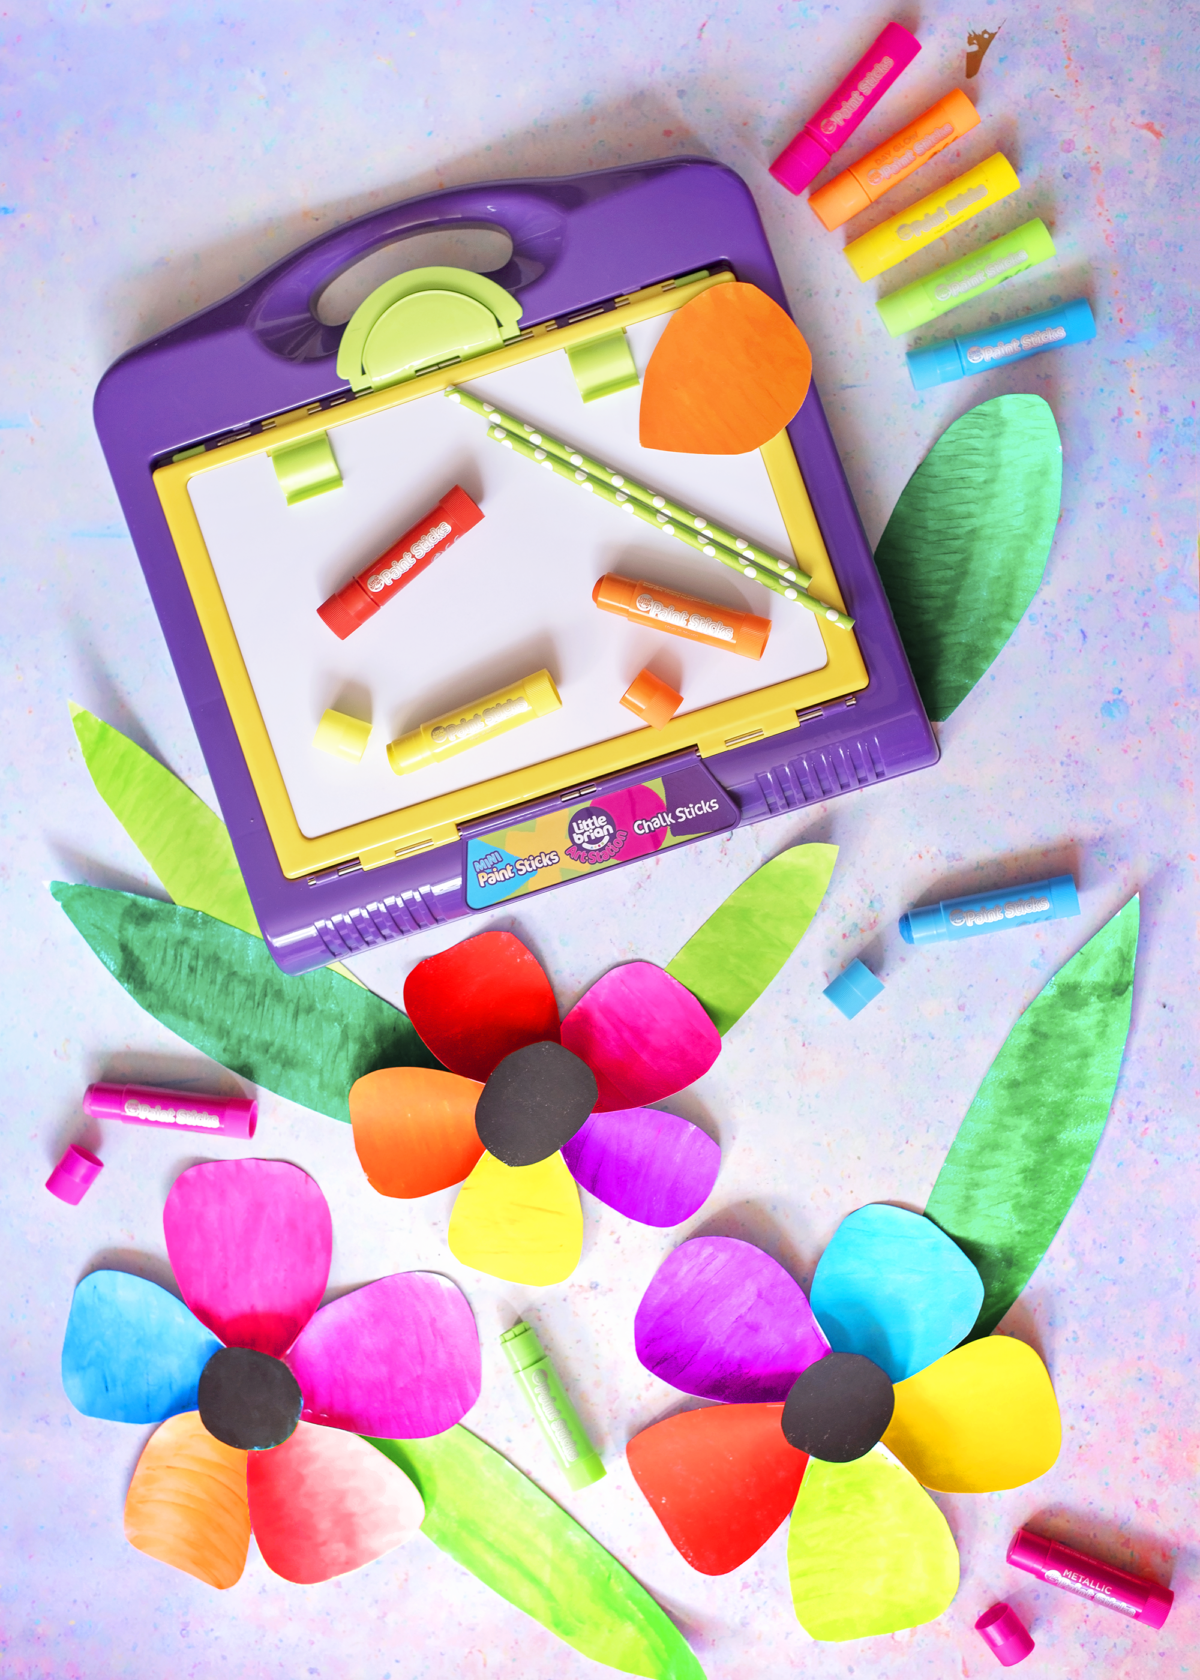 Little Brian Paint Sticks and Art Station, Large Rainbow Paper Flowers. All simple and mess free painting crafts for Spring and Mother's Day.